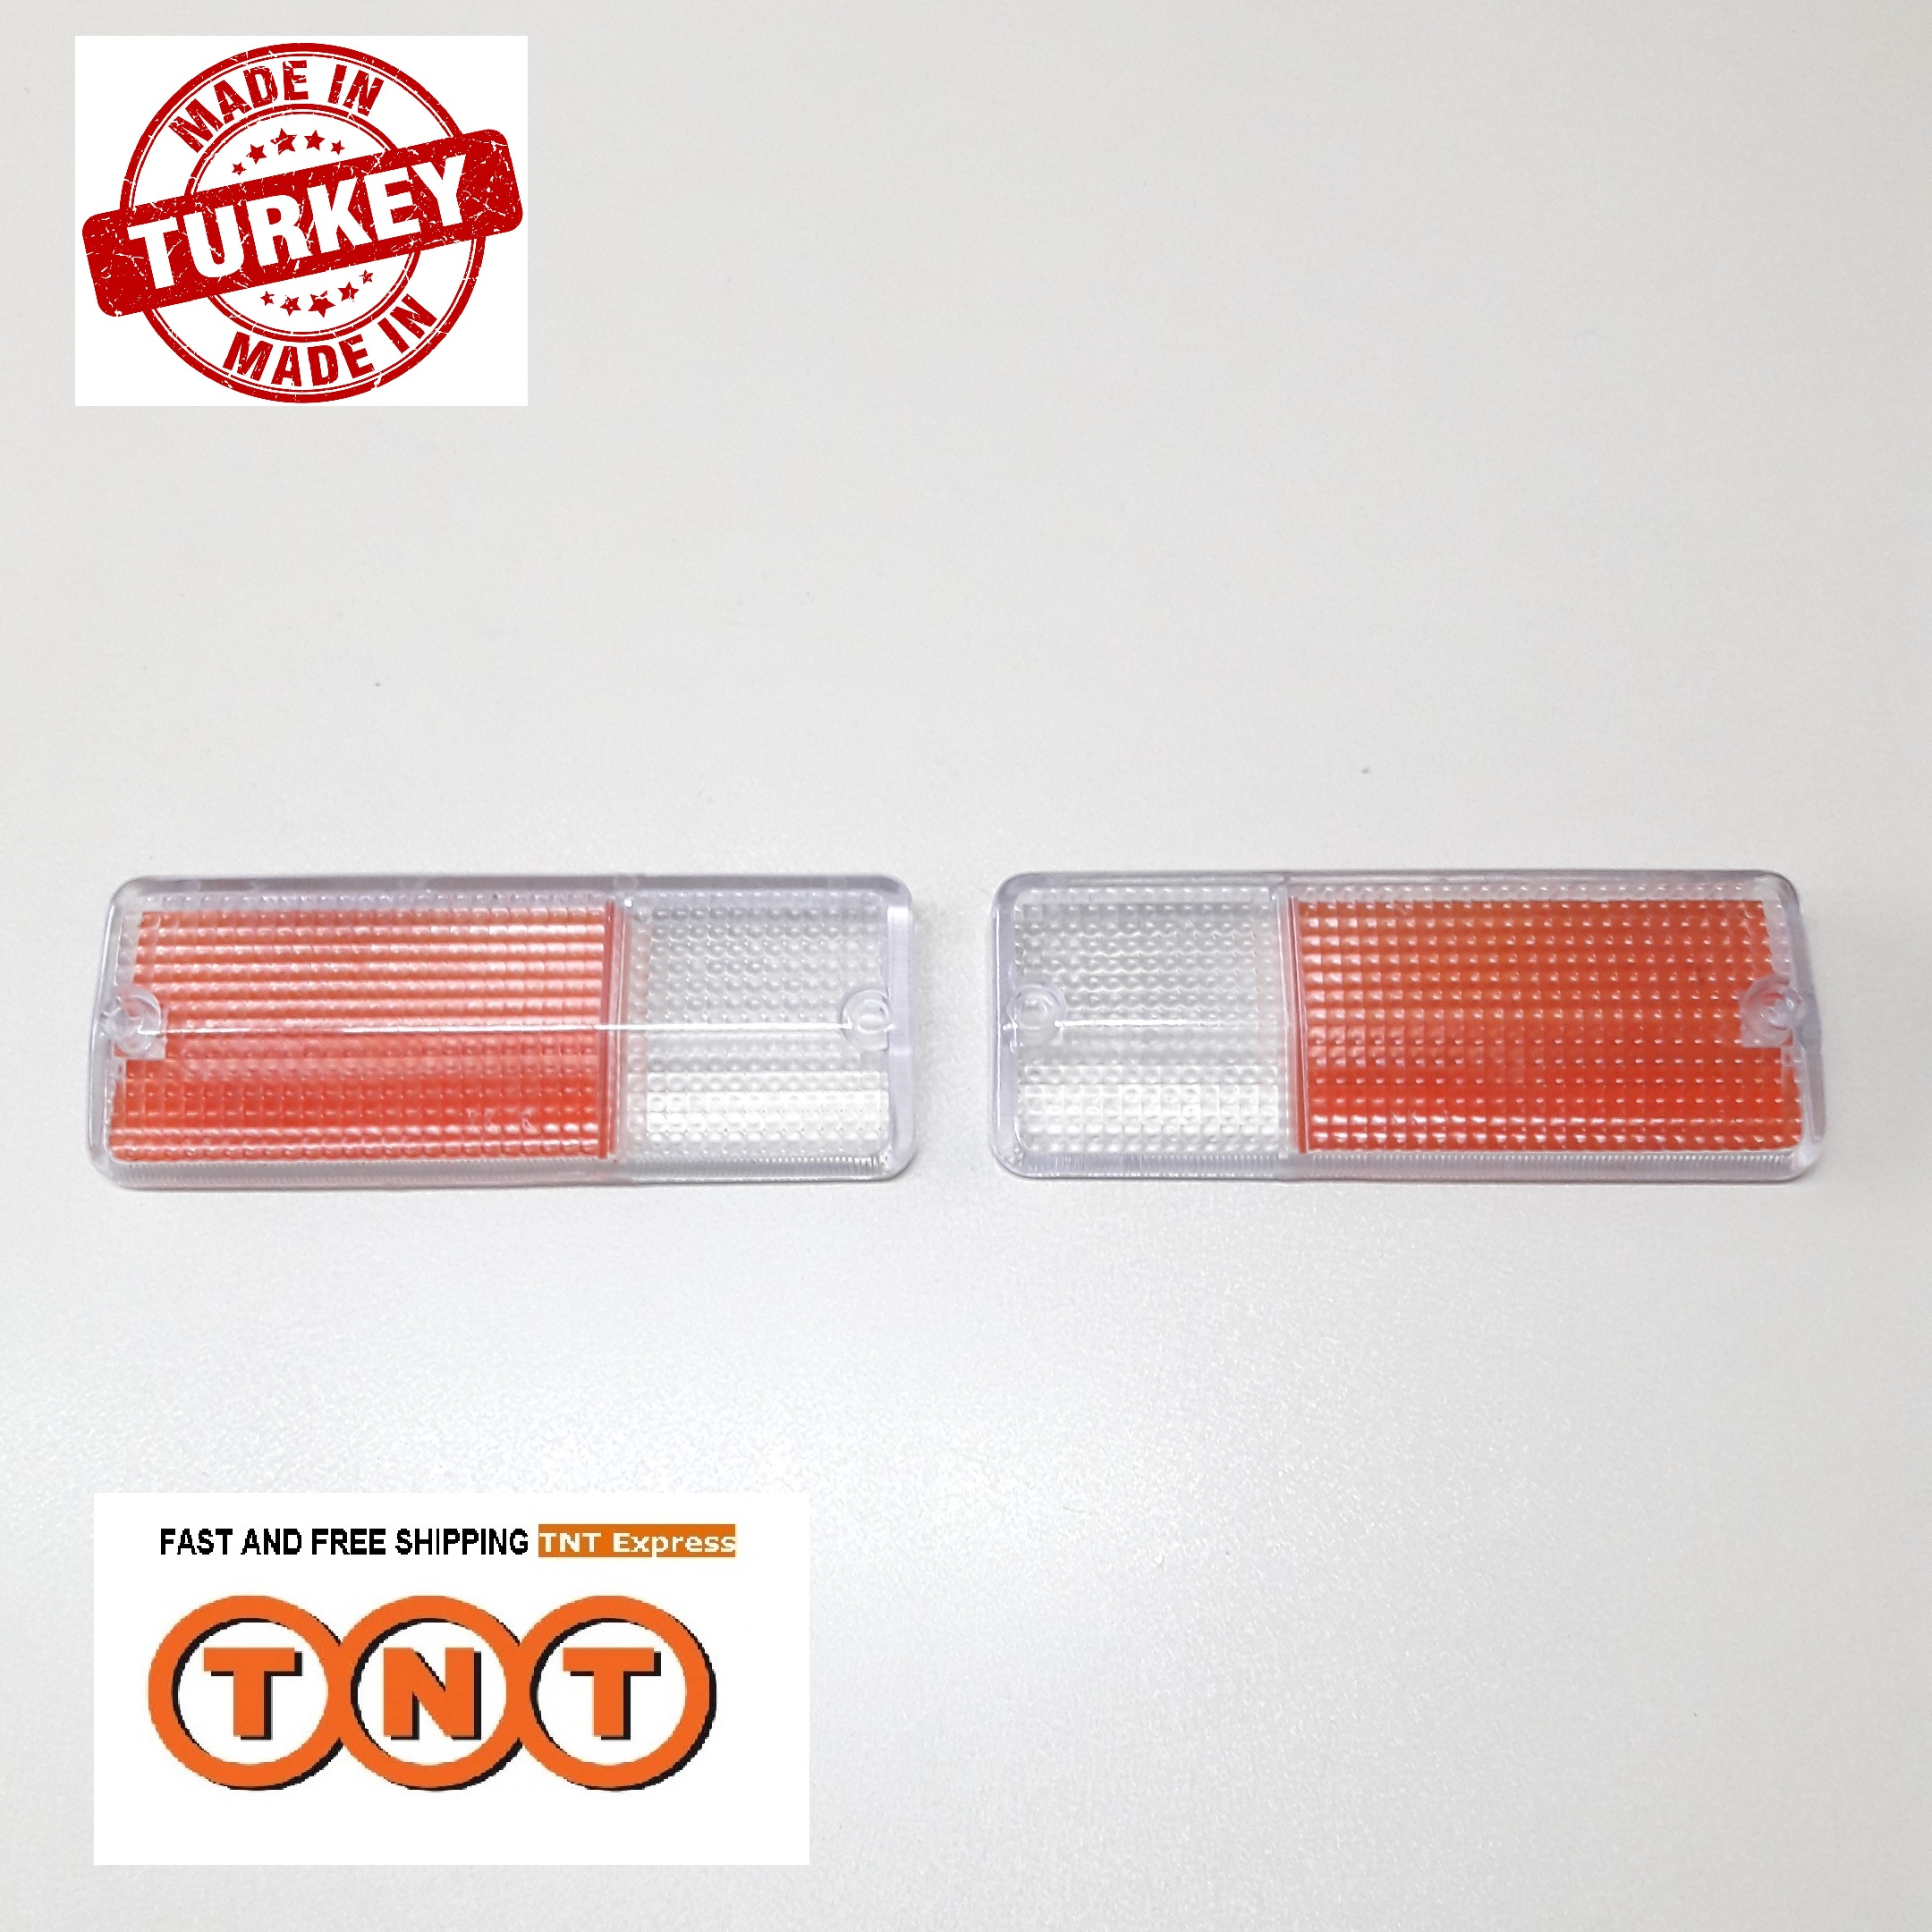 1 Pair Front Bumper Signal Lamp Glass Lens Left Right For Suzuki Sierra Samurai SJ410 SJ413 1986-1995 /Free TNT Express Shipping